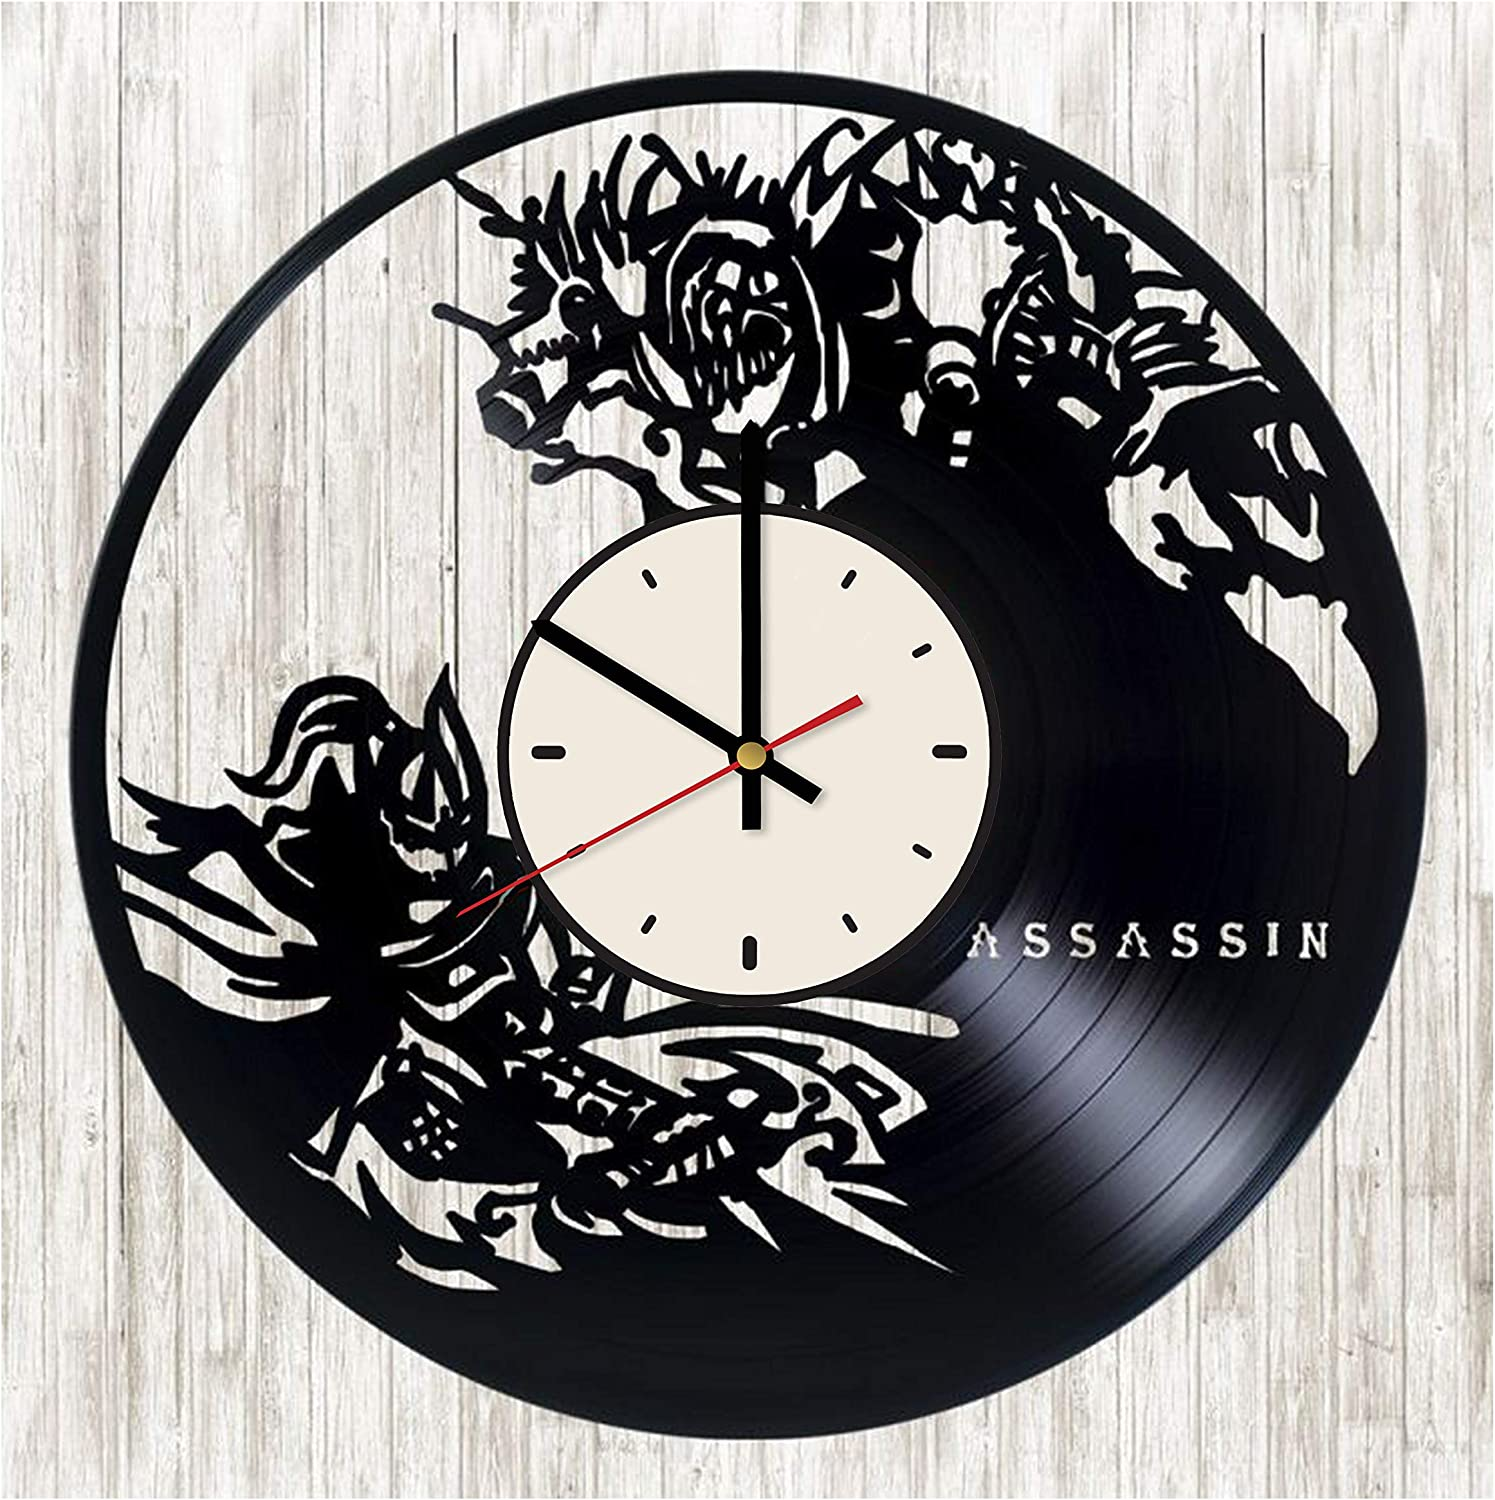 Amazon Com Video Game Vinyl Clock Gamer Fans Birthday Gifts Ideas Gamer Room Home Wall Decor Home Kitchen